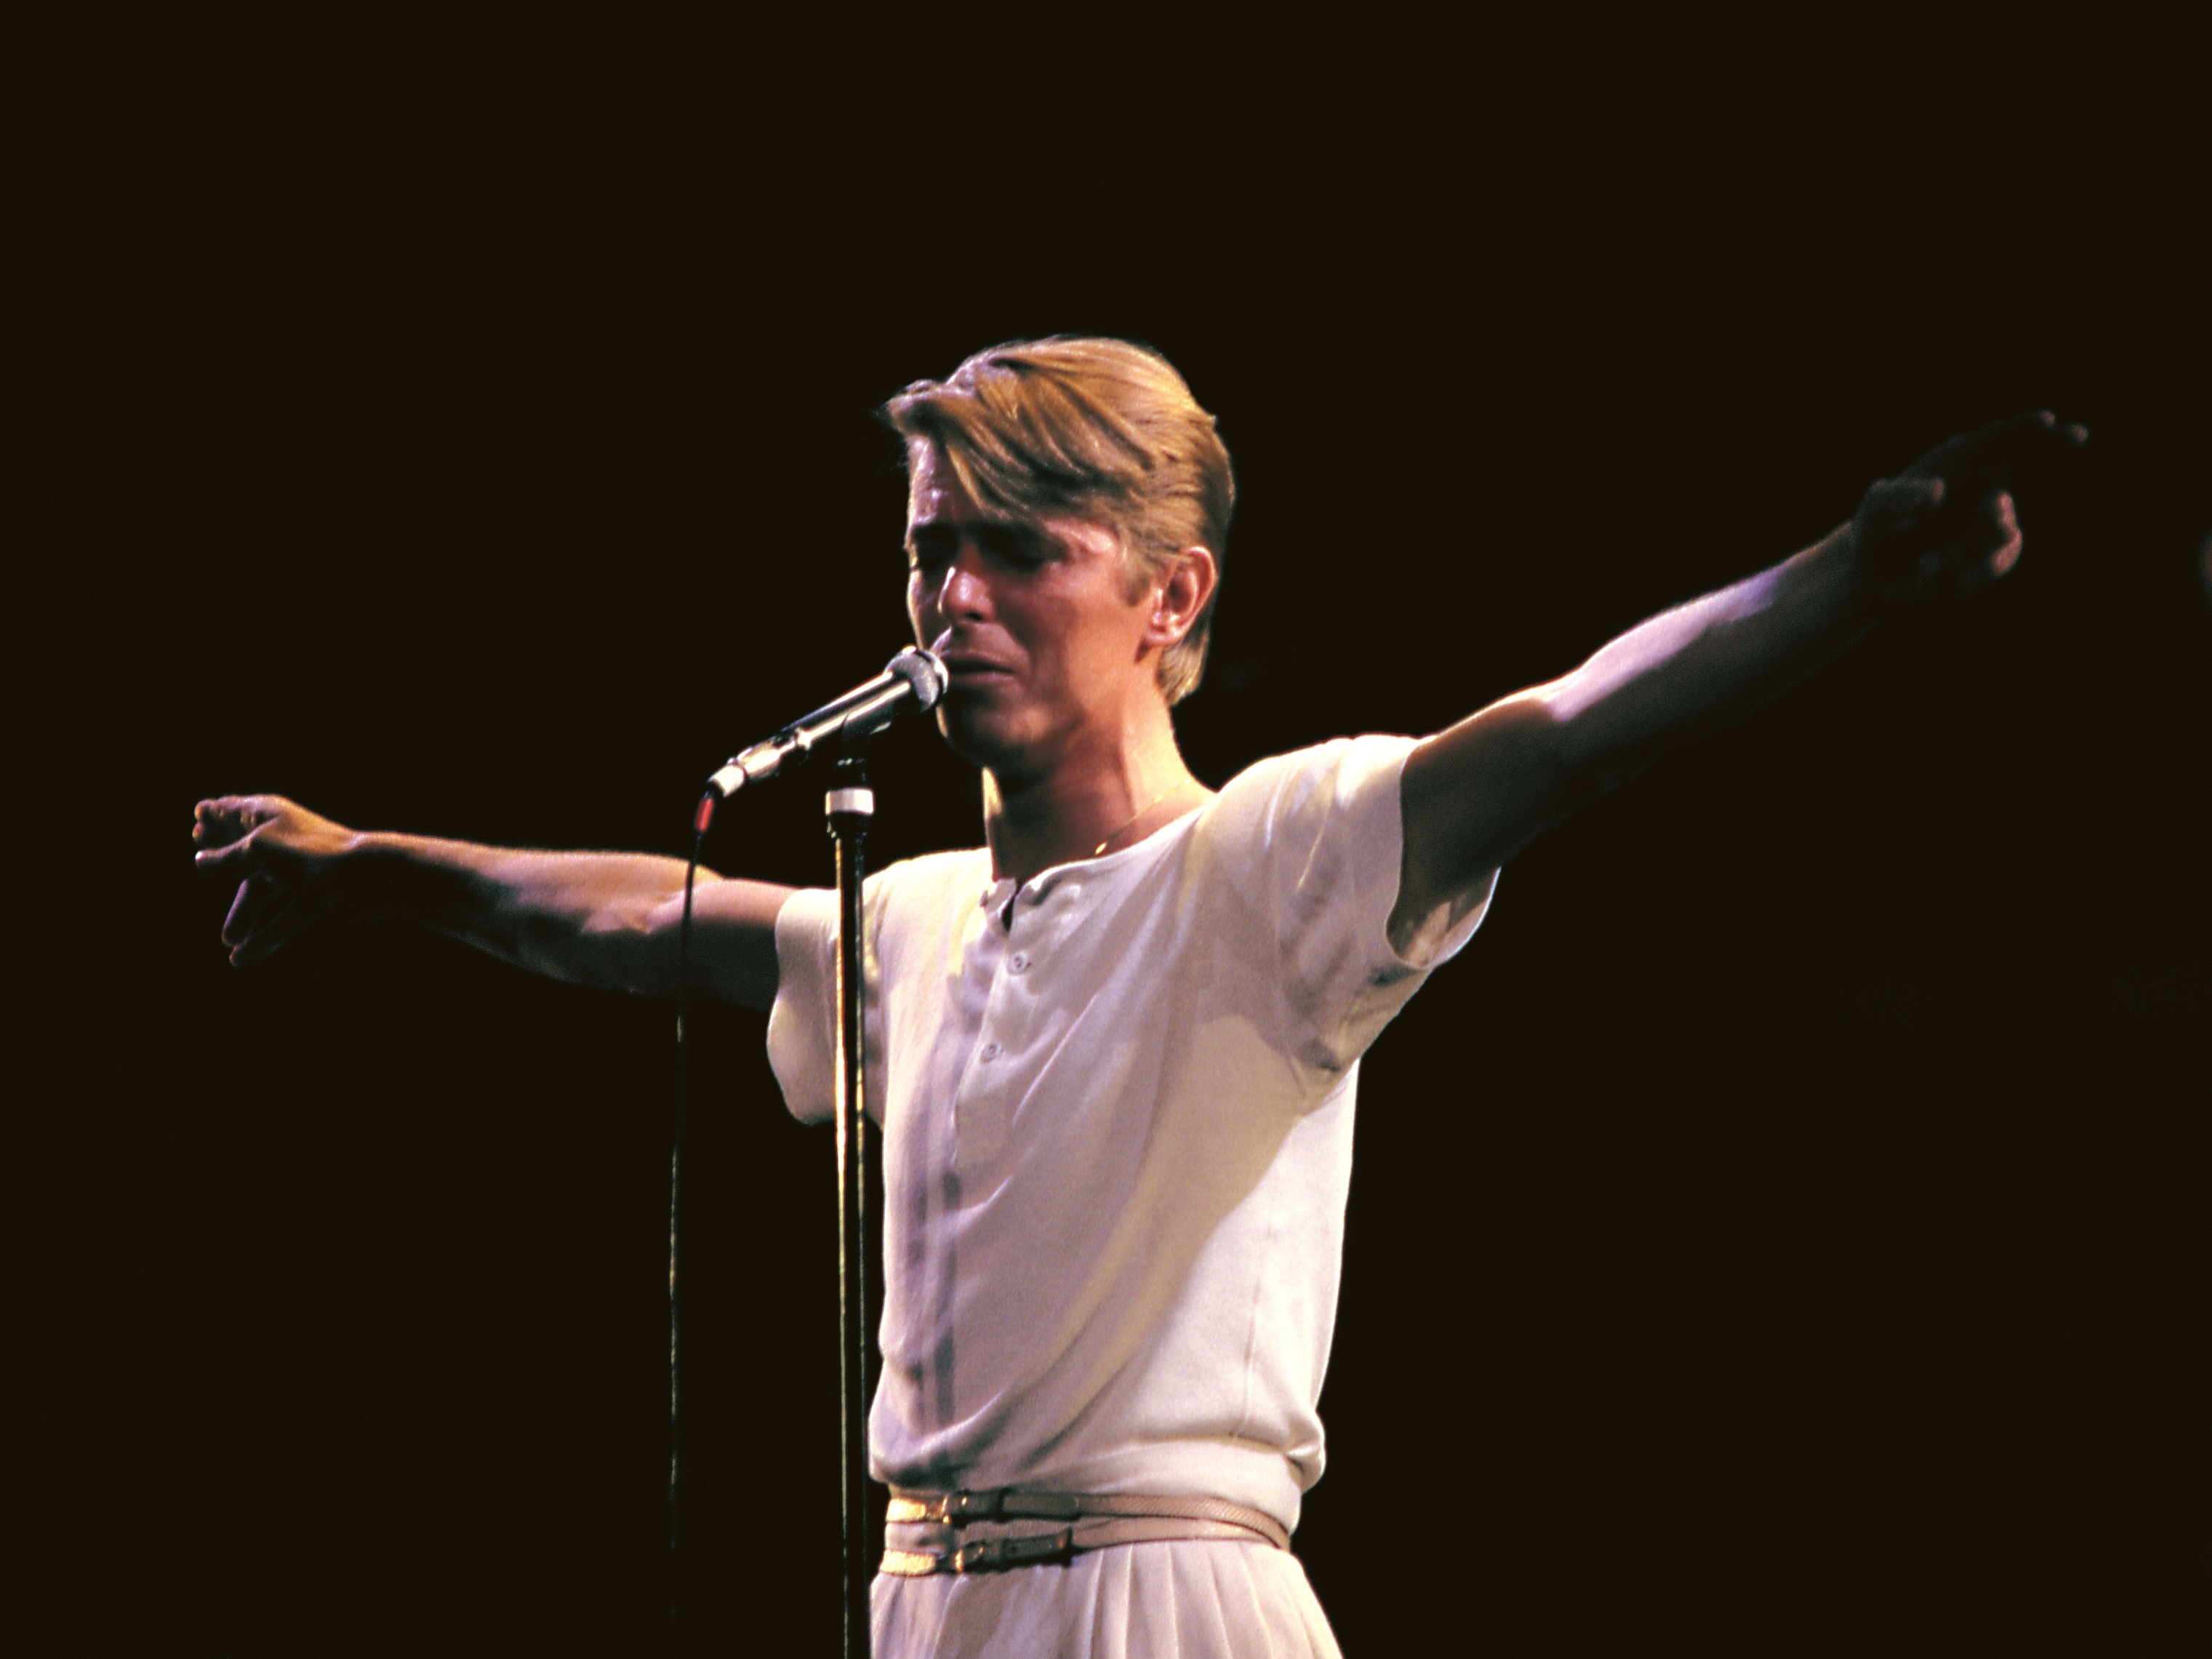 How 'Ashes To Ashes' Put The First Act Of David Bowie's Career To Rest